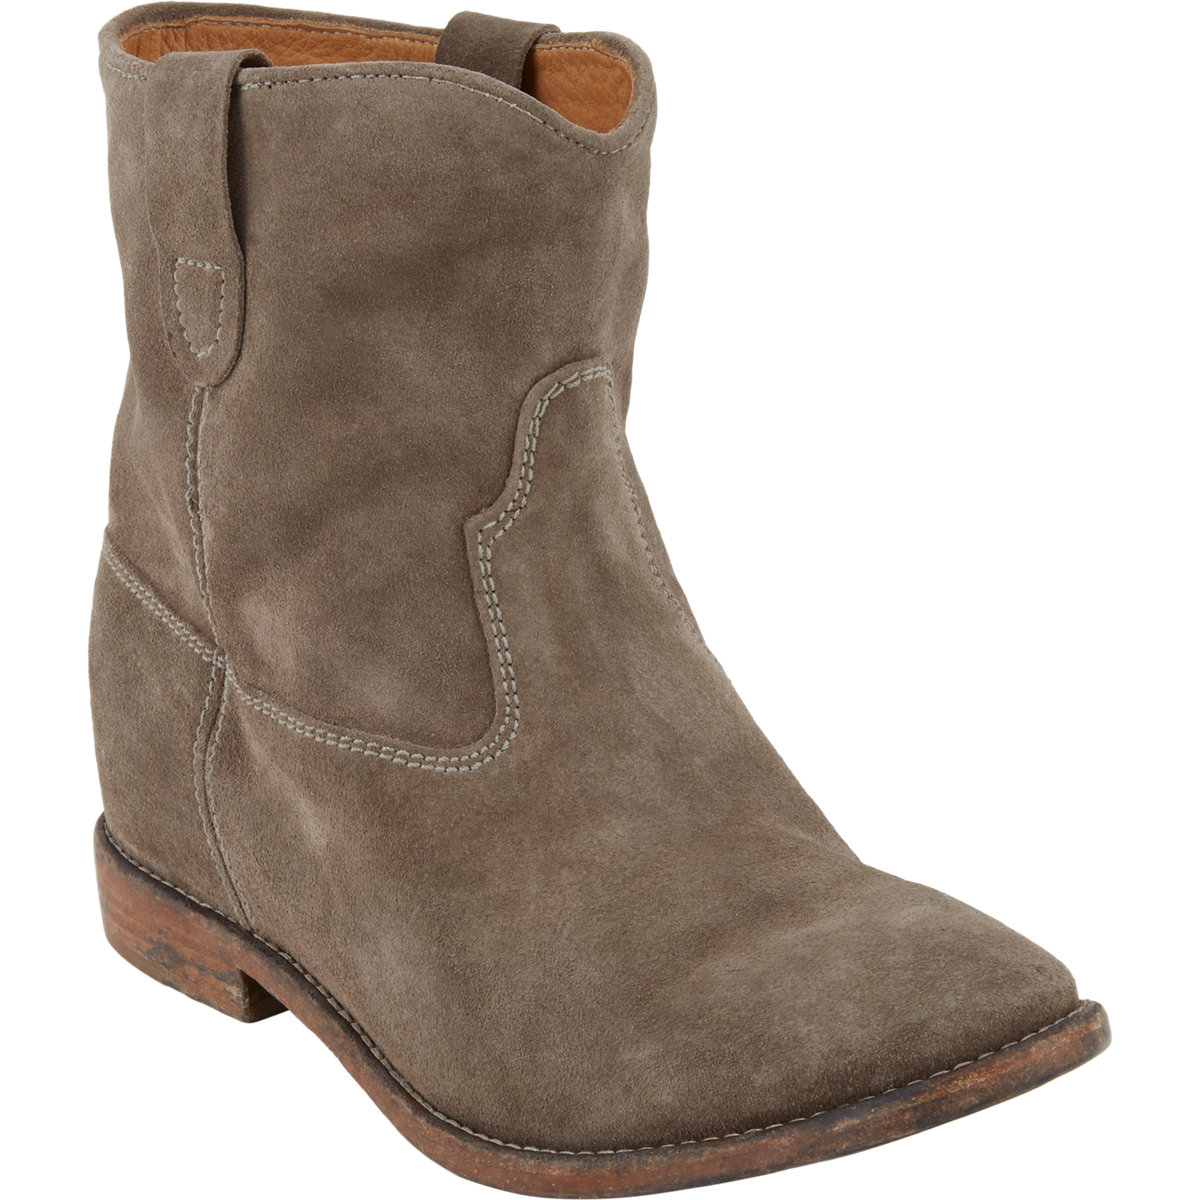 toile isabel marant crisi ankle boots in gray grey lyst. Black Bedroom Furniture Sets. Home Design Ideas